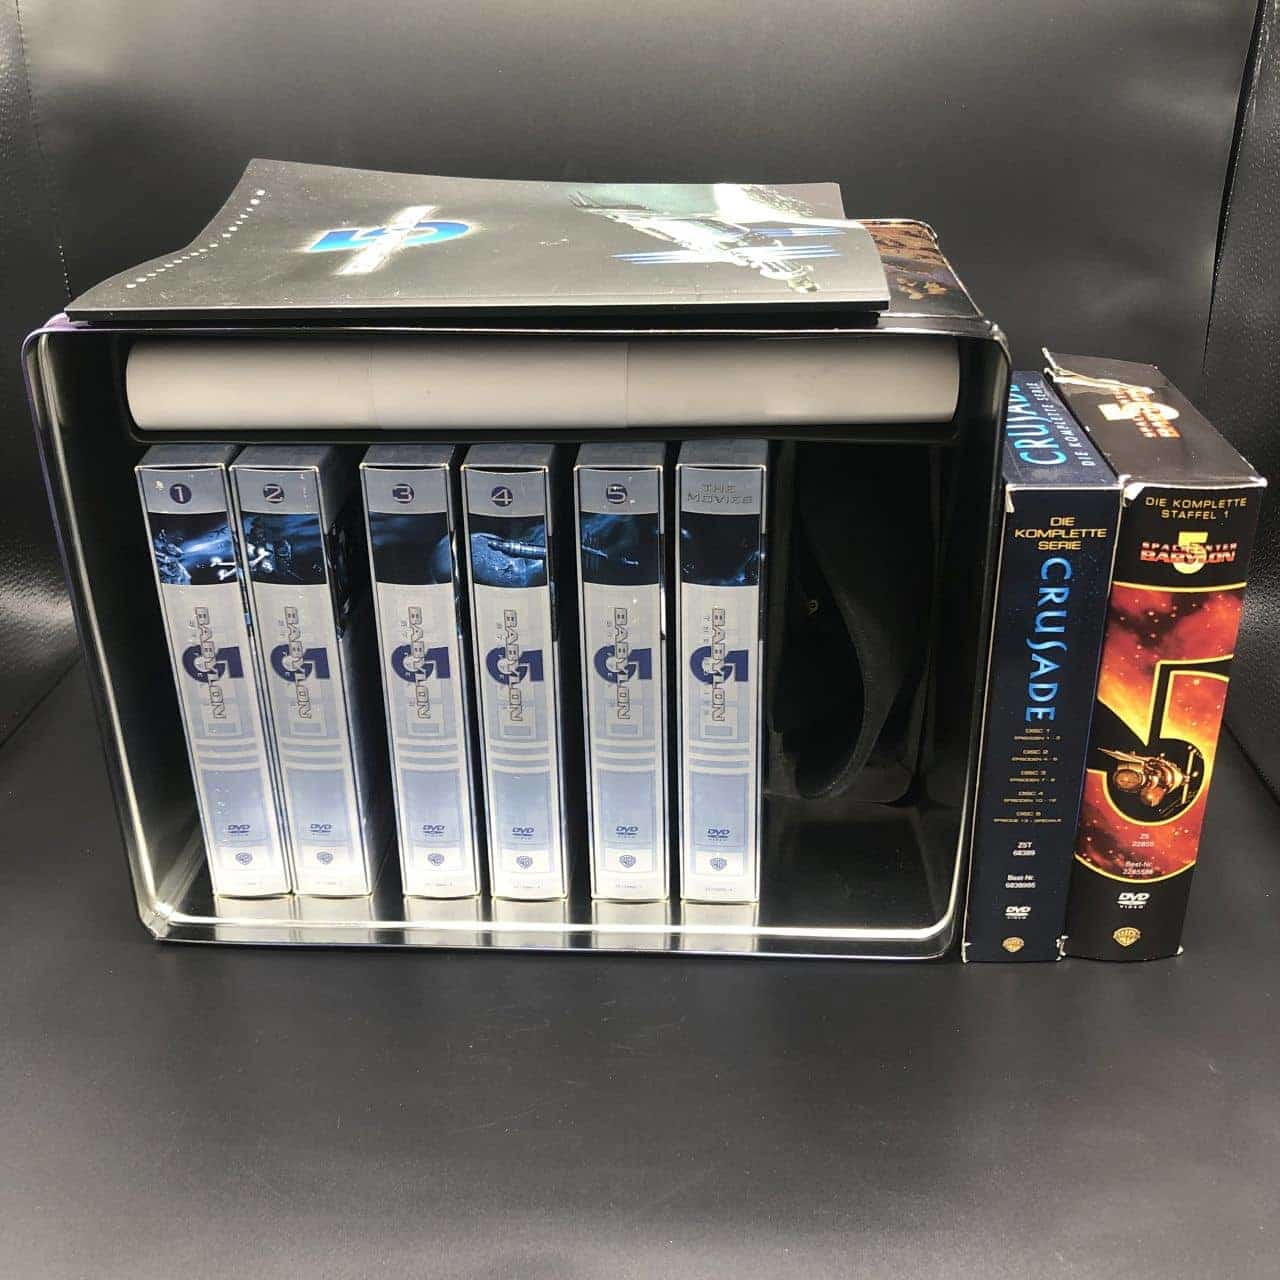 Babylon 5 Serie (Collectors Edition - Limited Edition) (Box), DVD